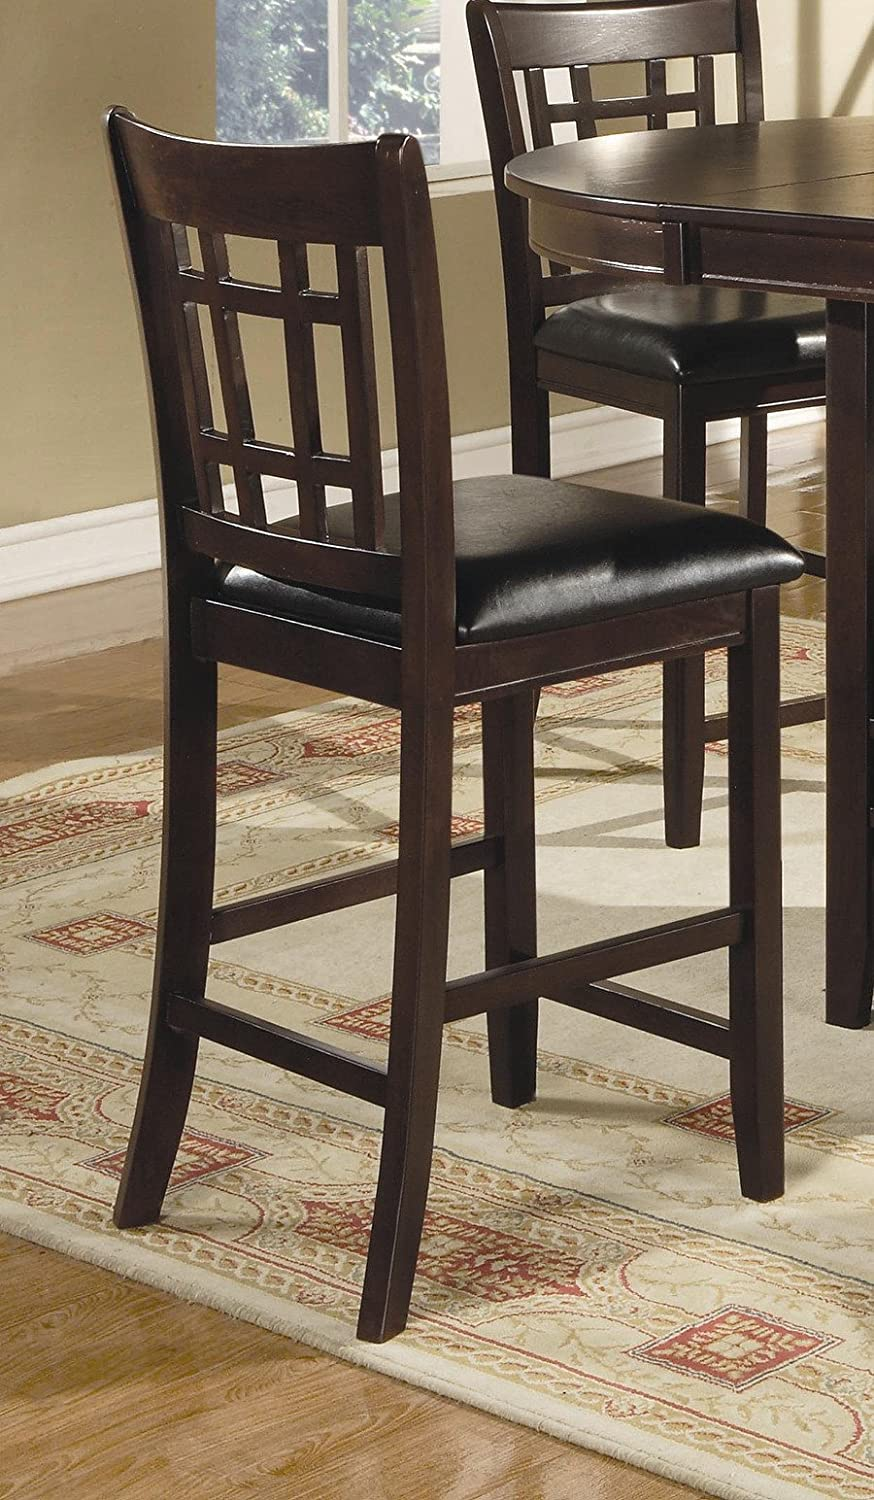 BK amazon kitchen chairs Amazon com Coaster Leather Look 2 Piece Pub Chair 24 height Cappuccino Black Kitchen Dining